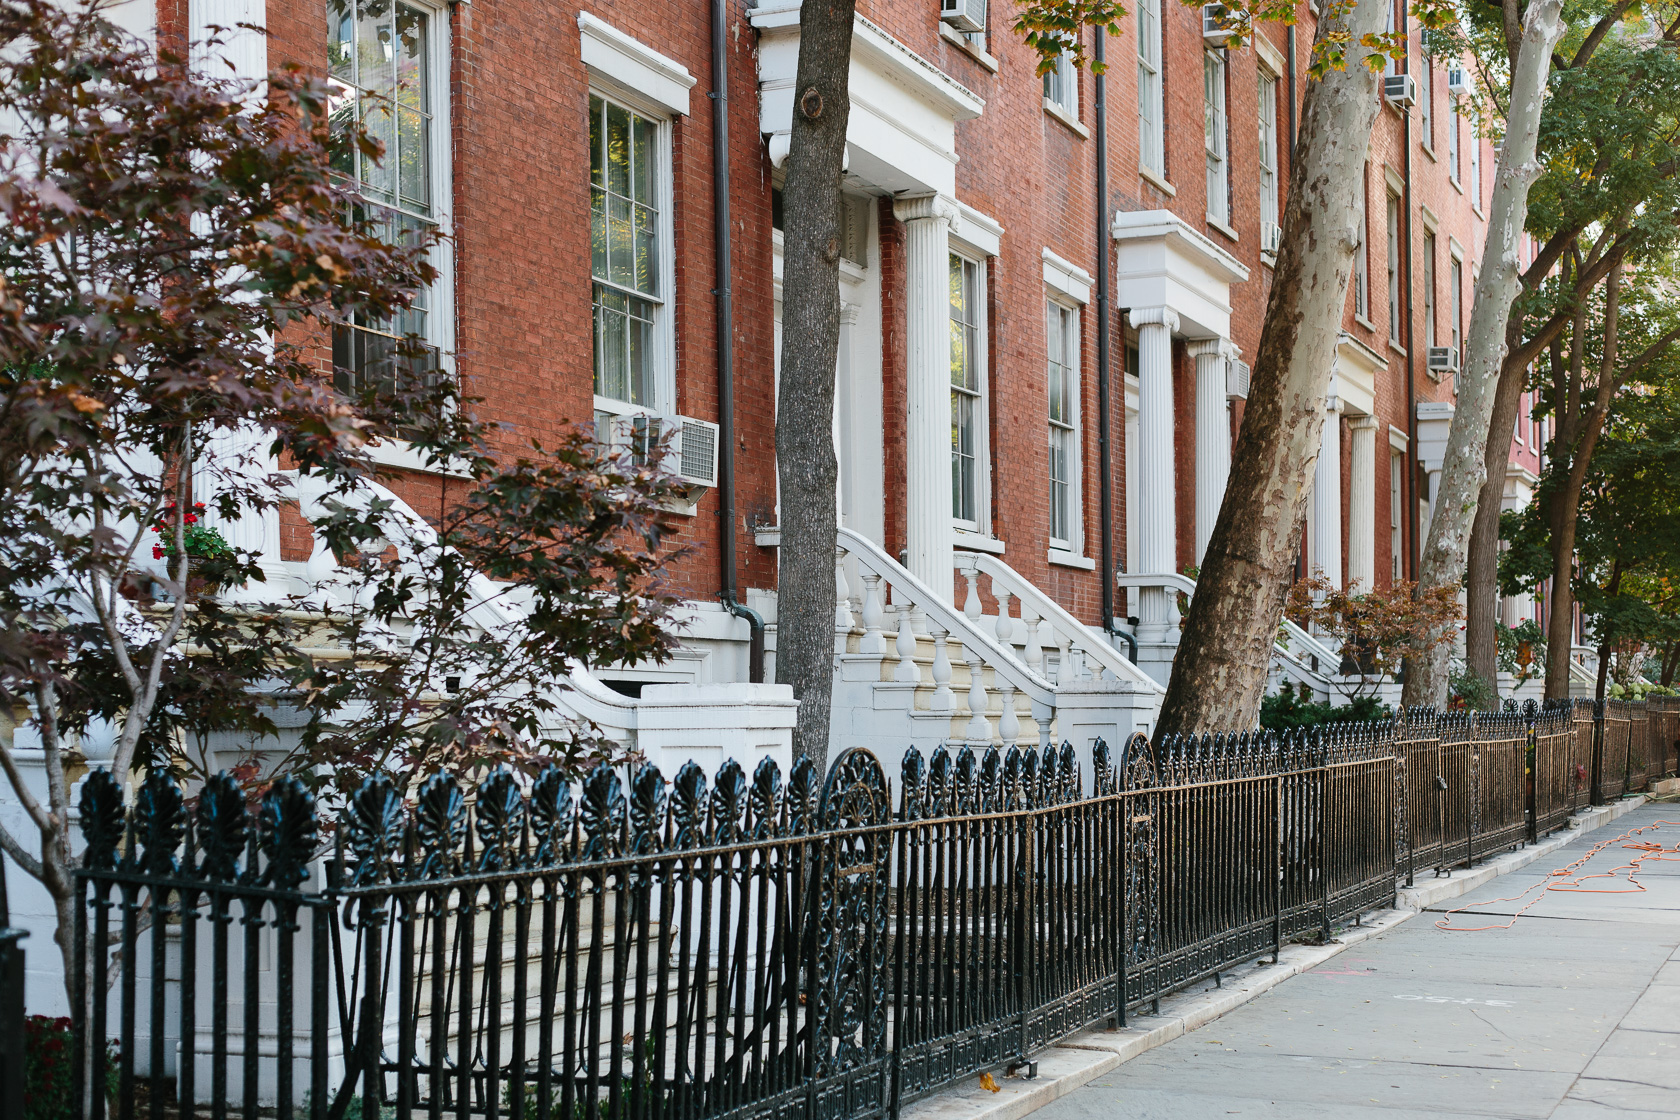 fall-in-washington-square-park-3616